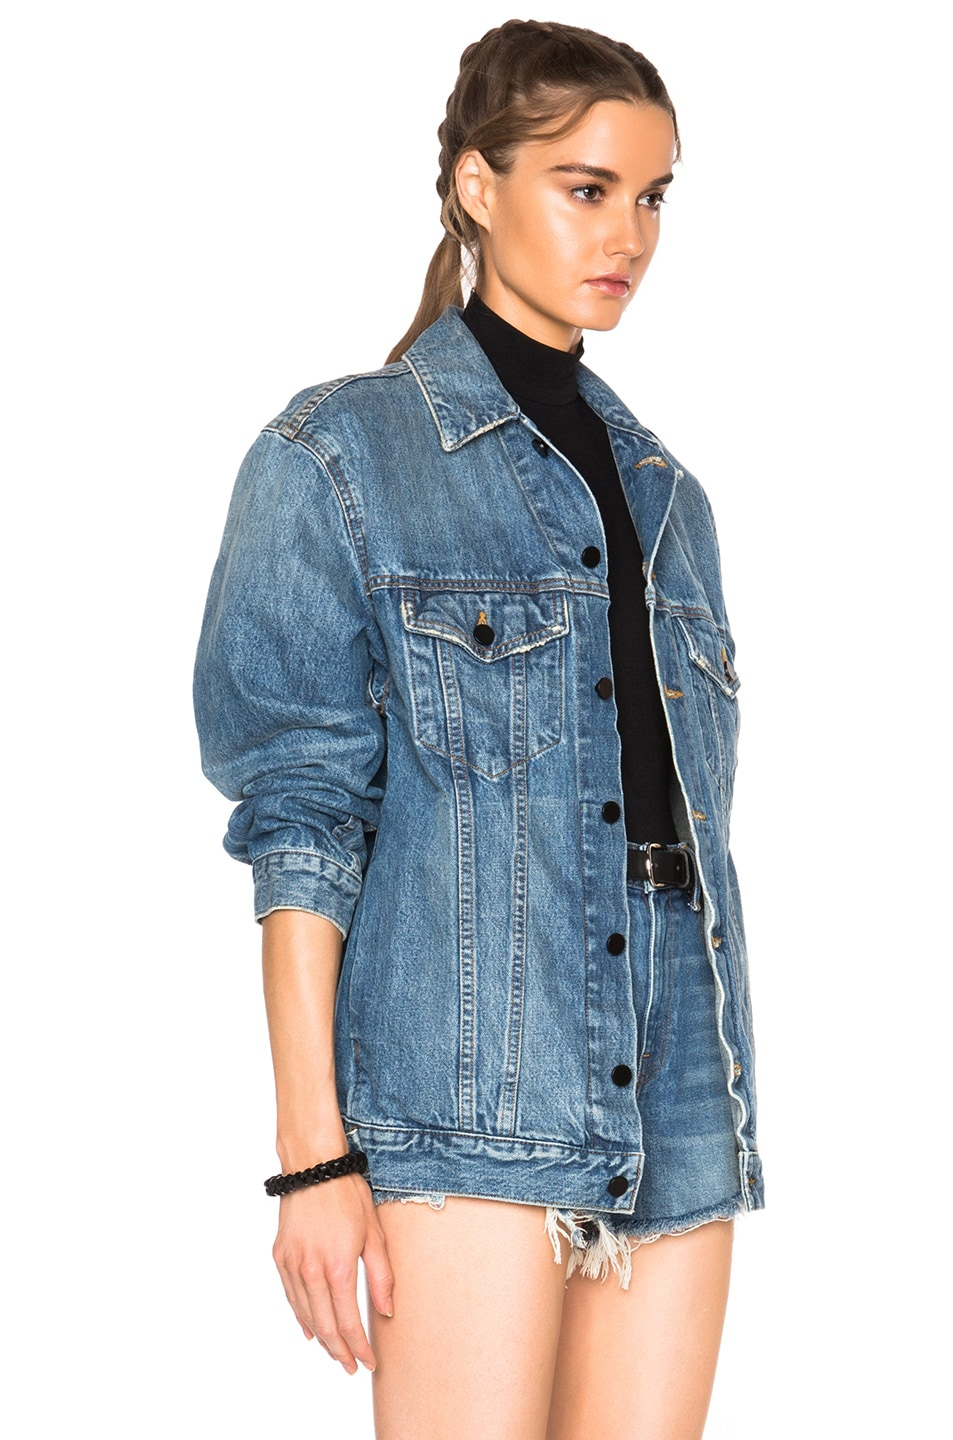 Image 3 of Alexander Wang Daze Oversized Jacket in Light Indigo Aged